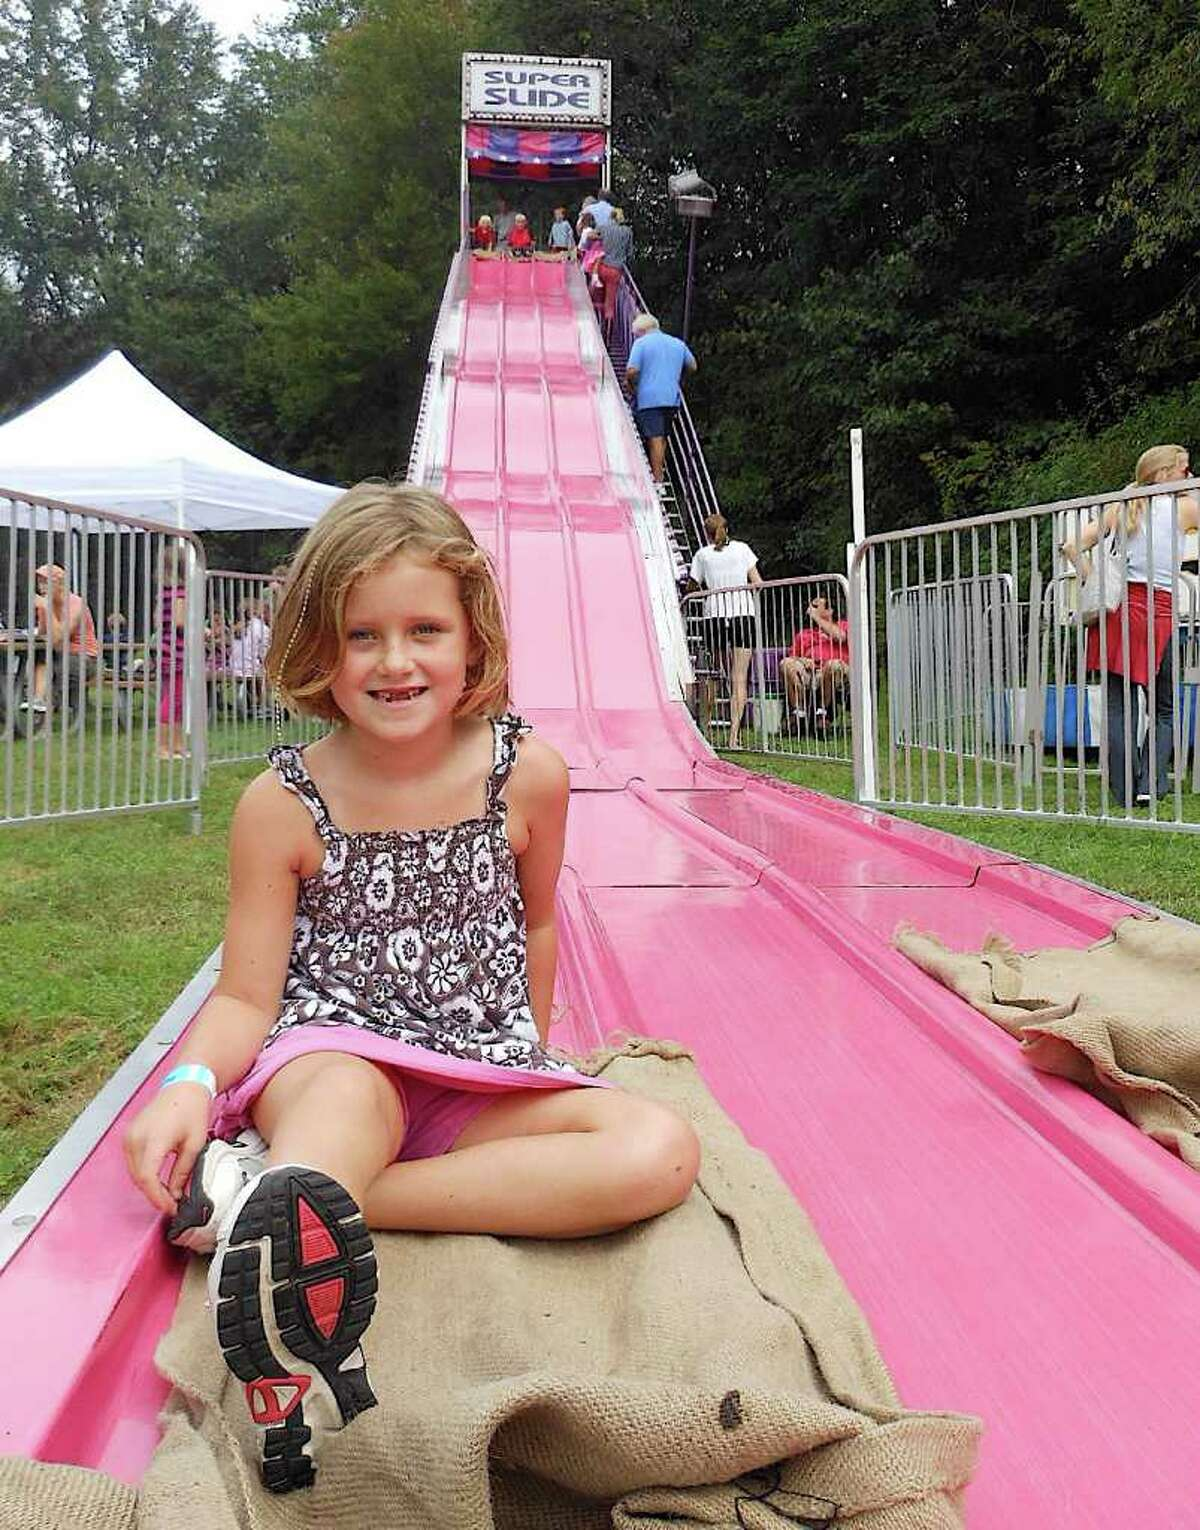 Madeline Reed, 7, a second-grader at Dwight School, smiles after a ride down the Super Slide at the school fair.